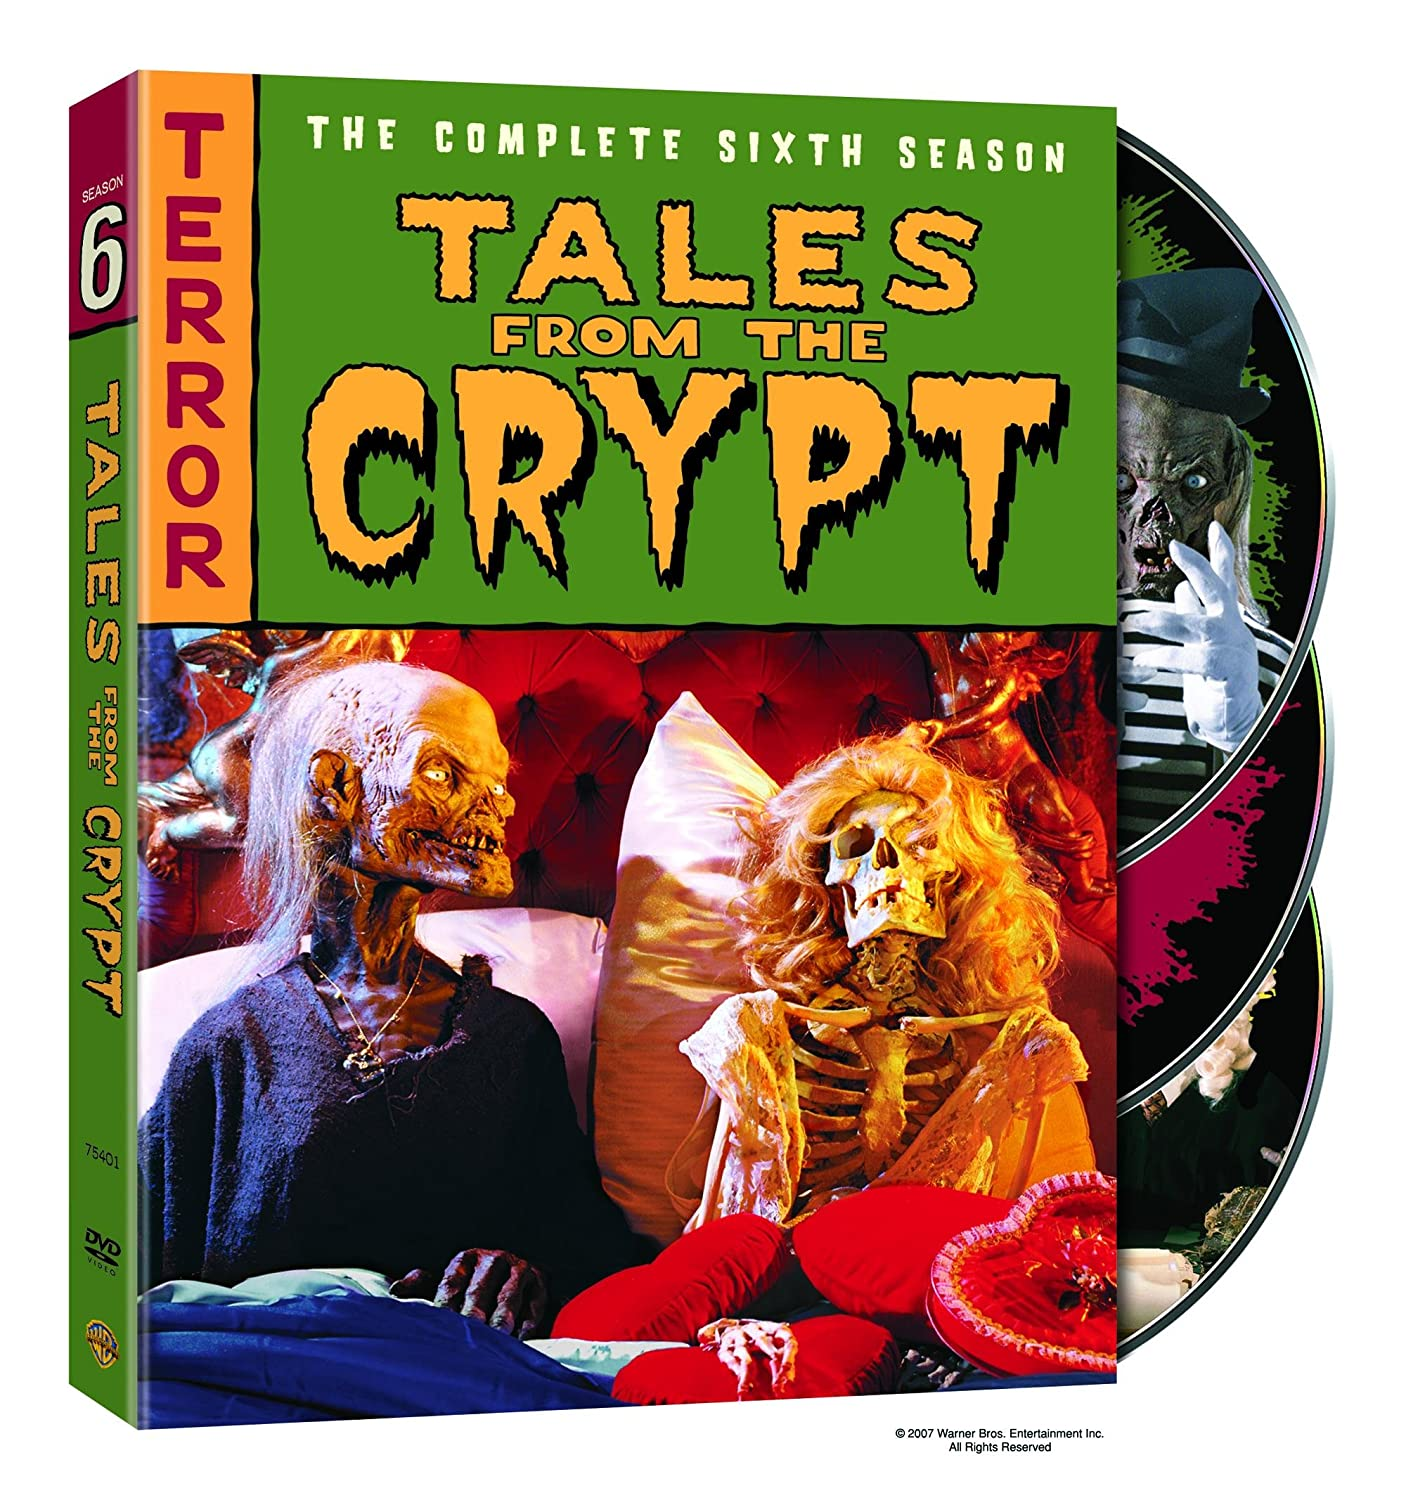 TALES FROM THE DVD CRYPT: S6 Max quality assurance 60% OFF